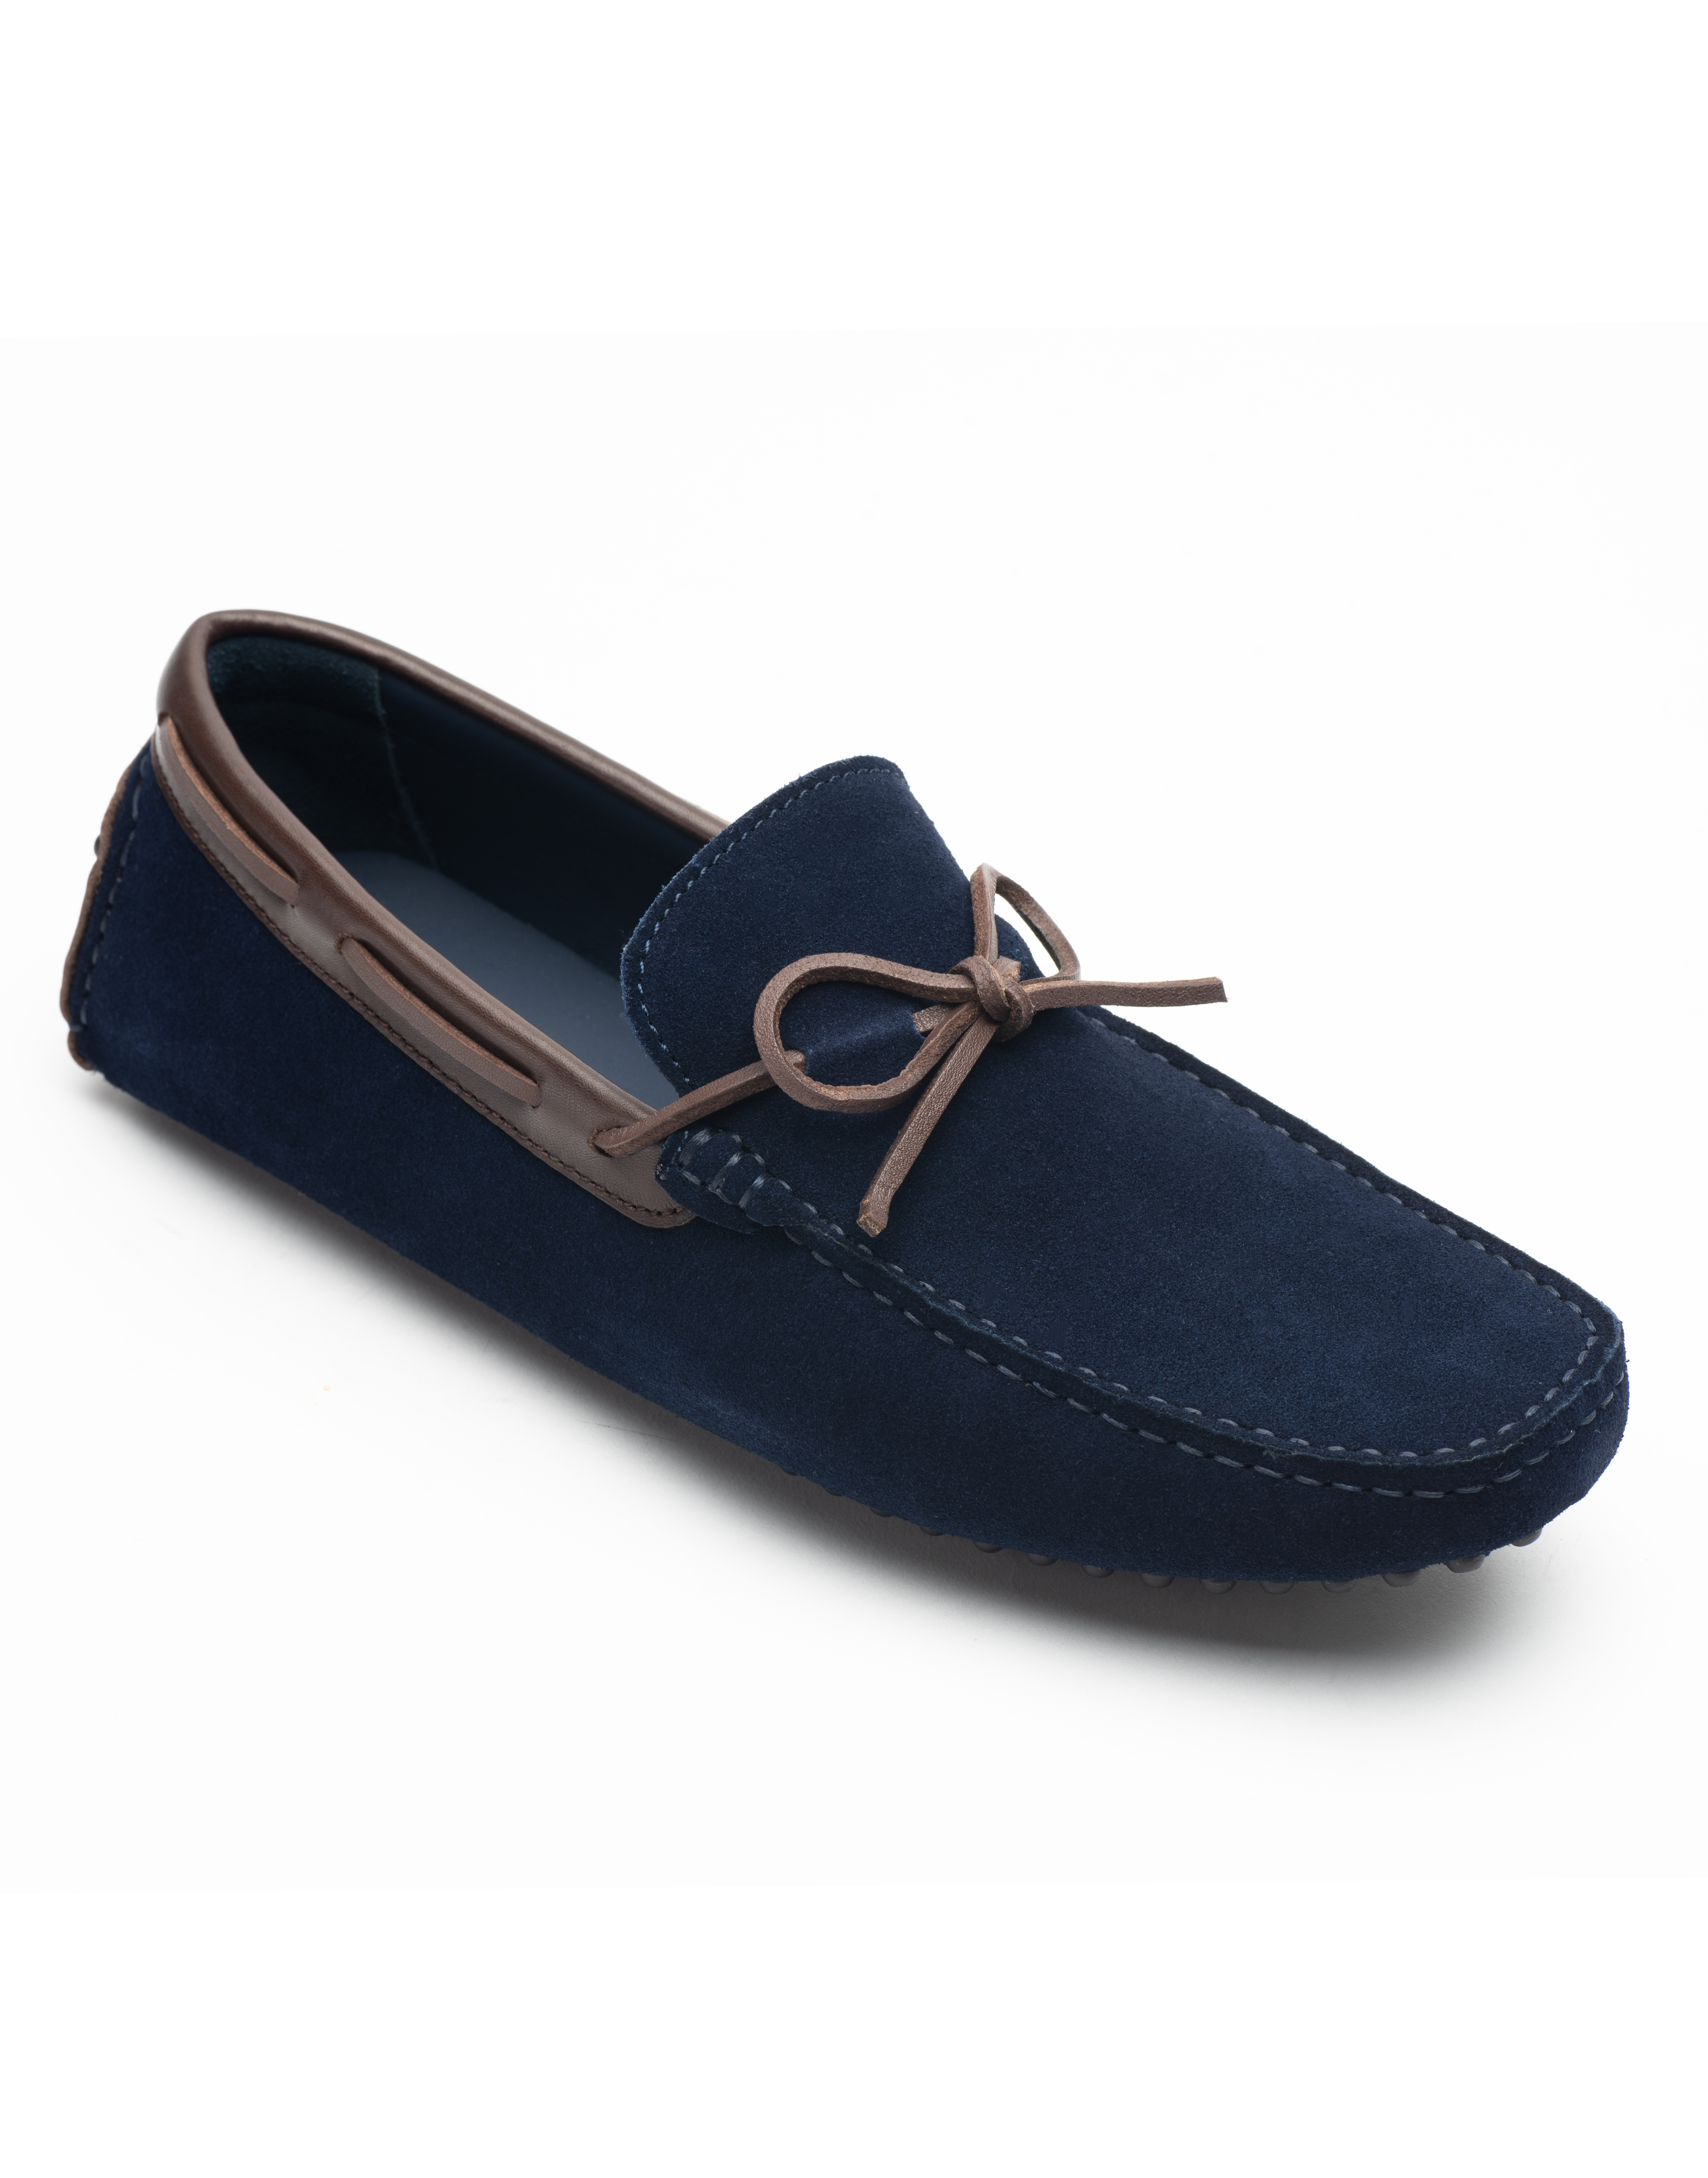 Heel _ Buckle London -Shoes-HF101-1-Drivers-Dark Blue suede with tan tassel-2